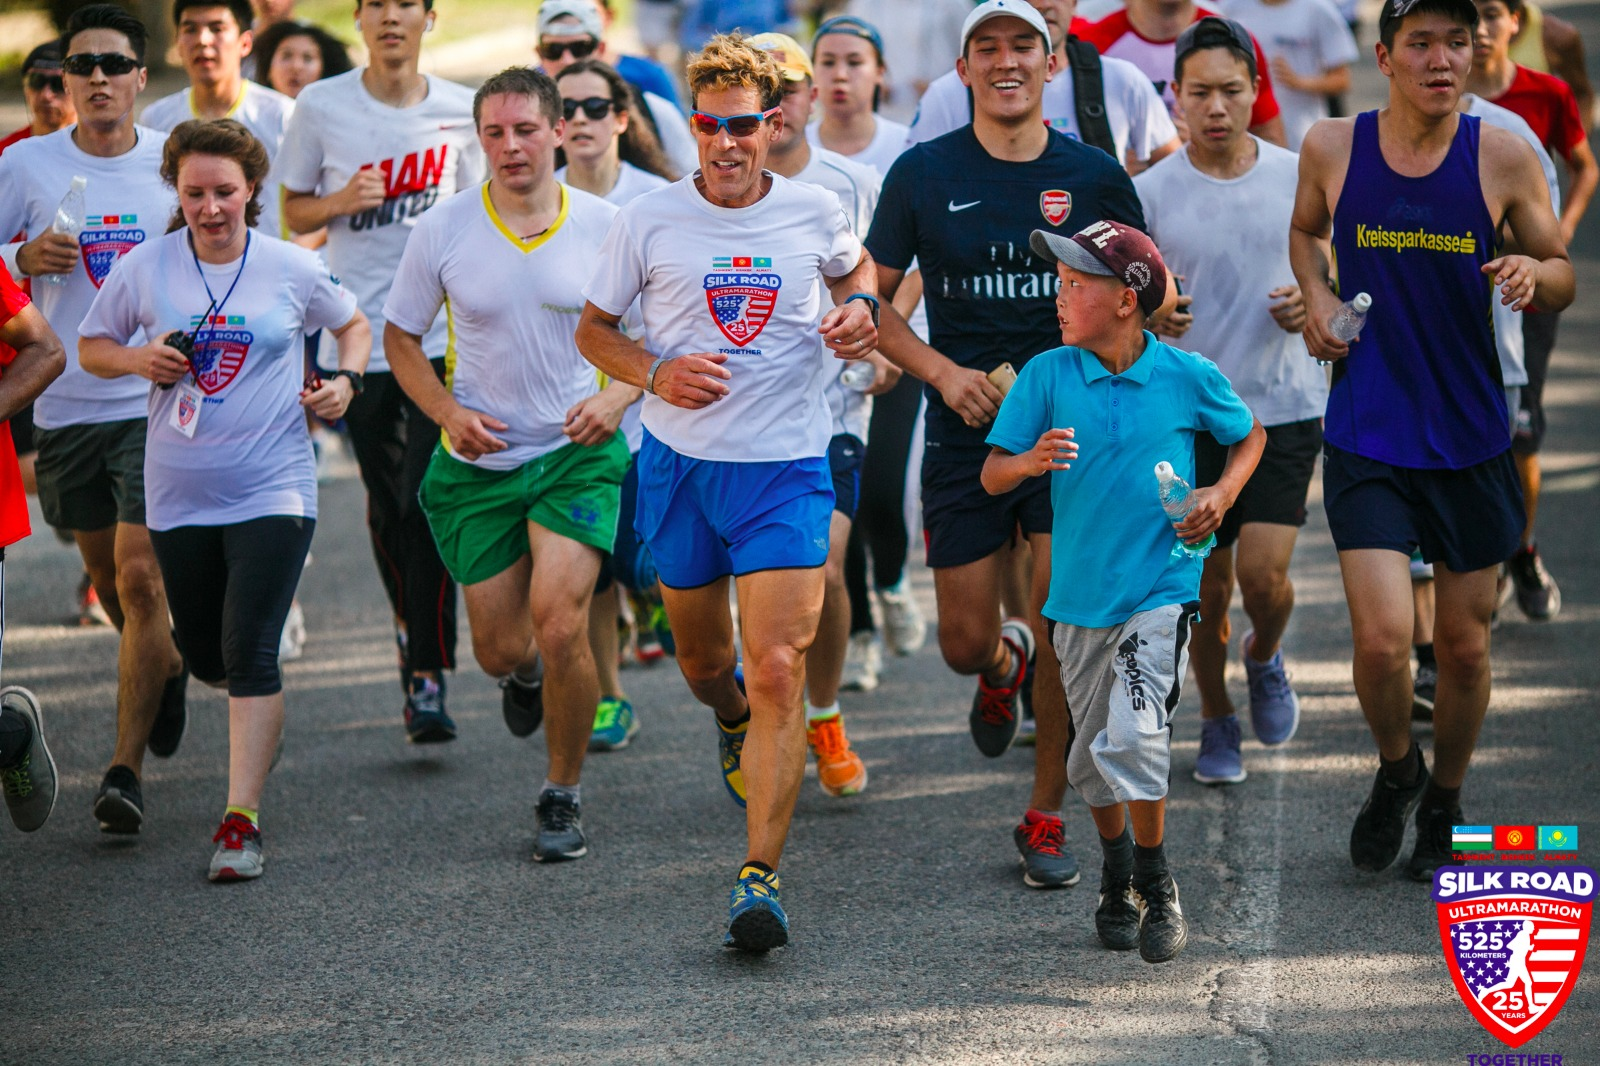 Dean running with a crowd